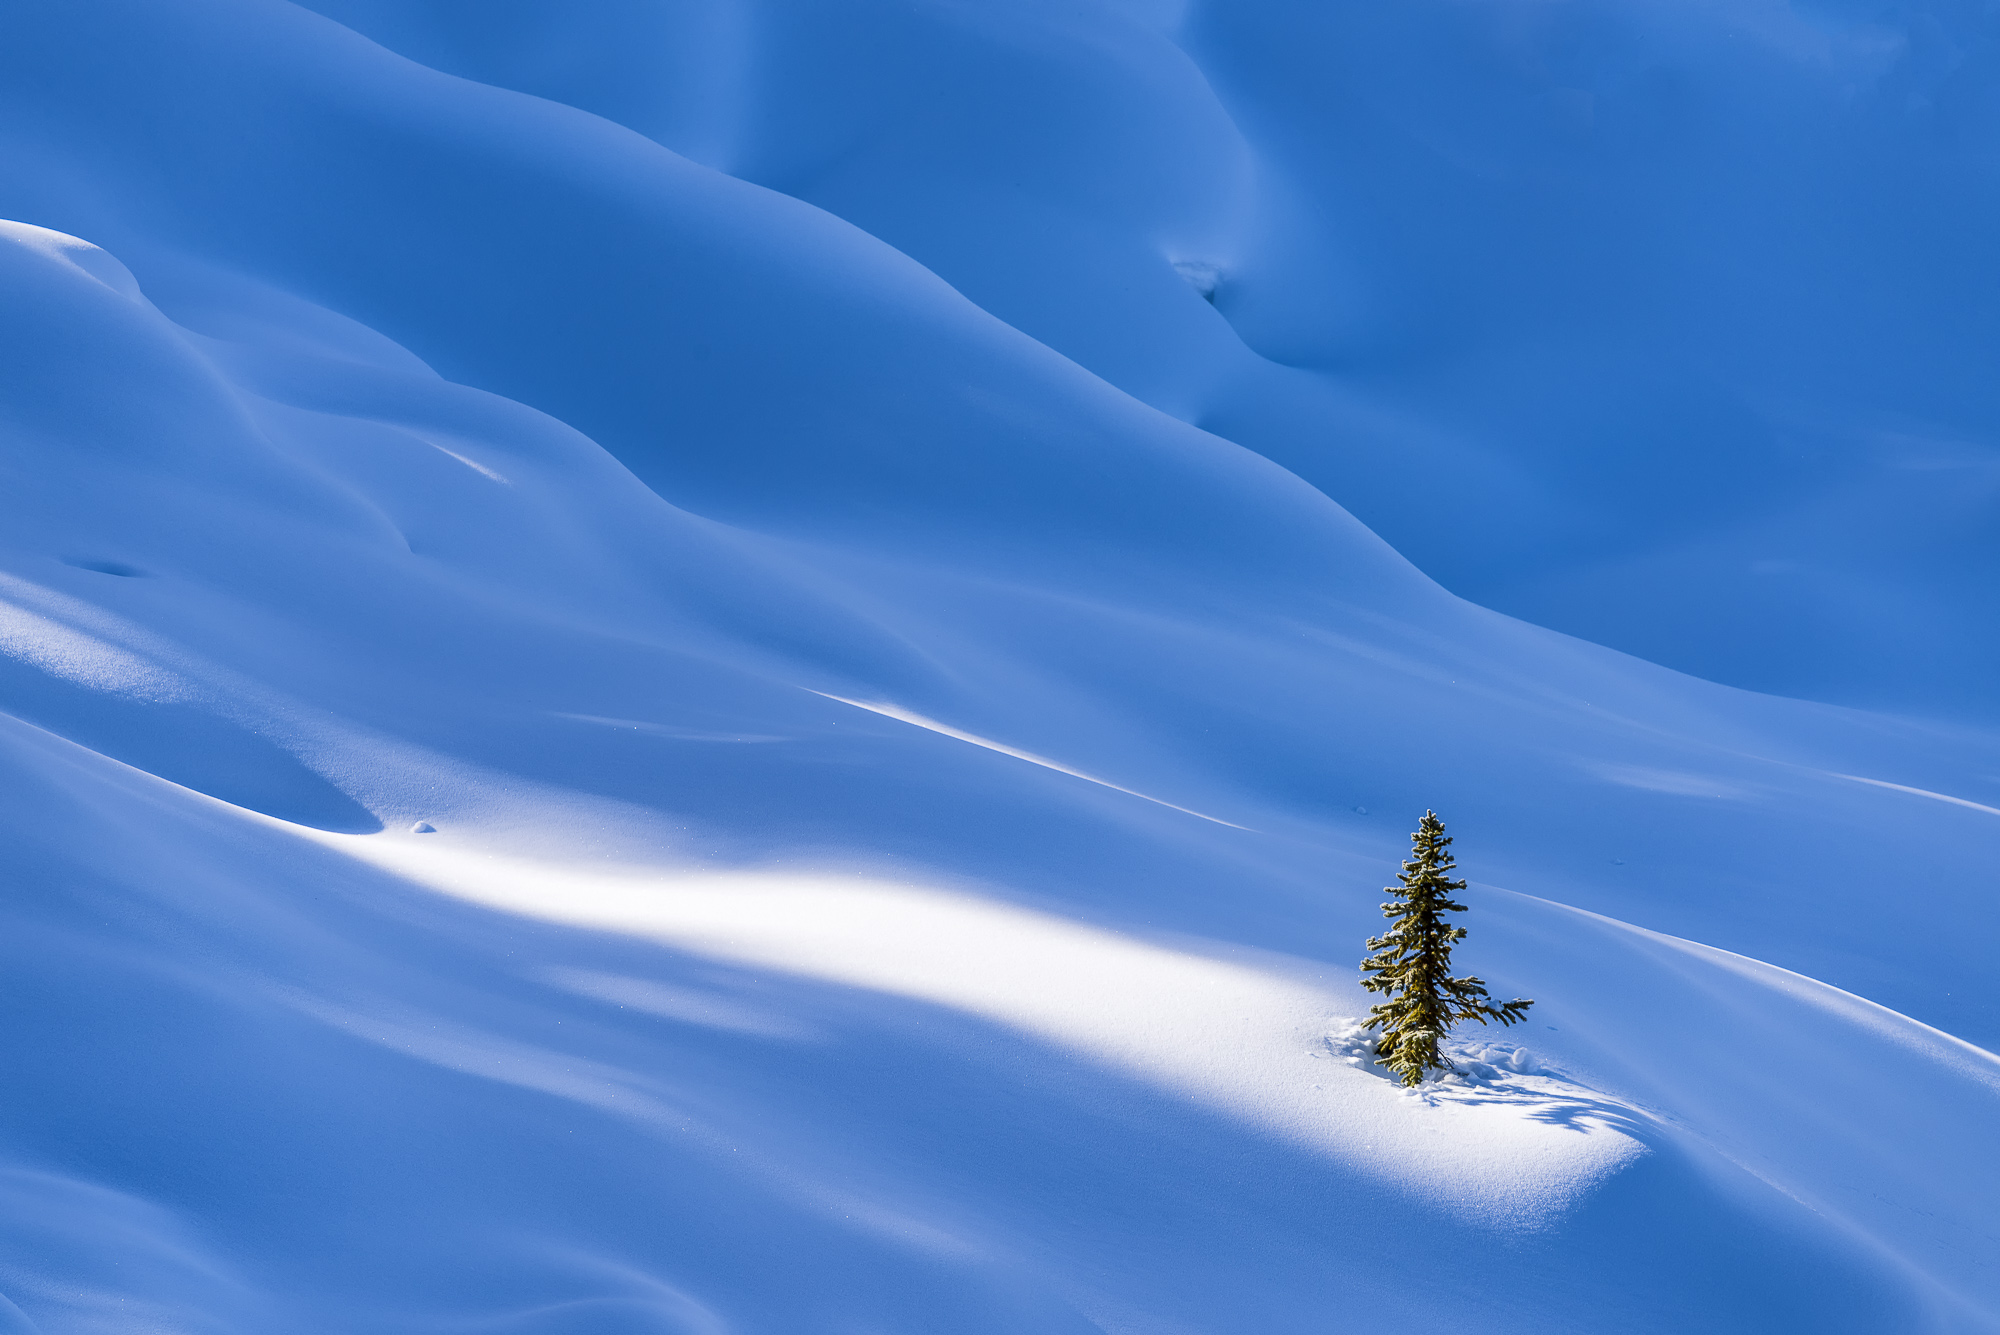 Single Pine Tree in Winter, Banff National Park, Aberta, Canada